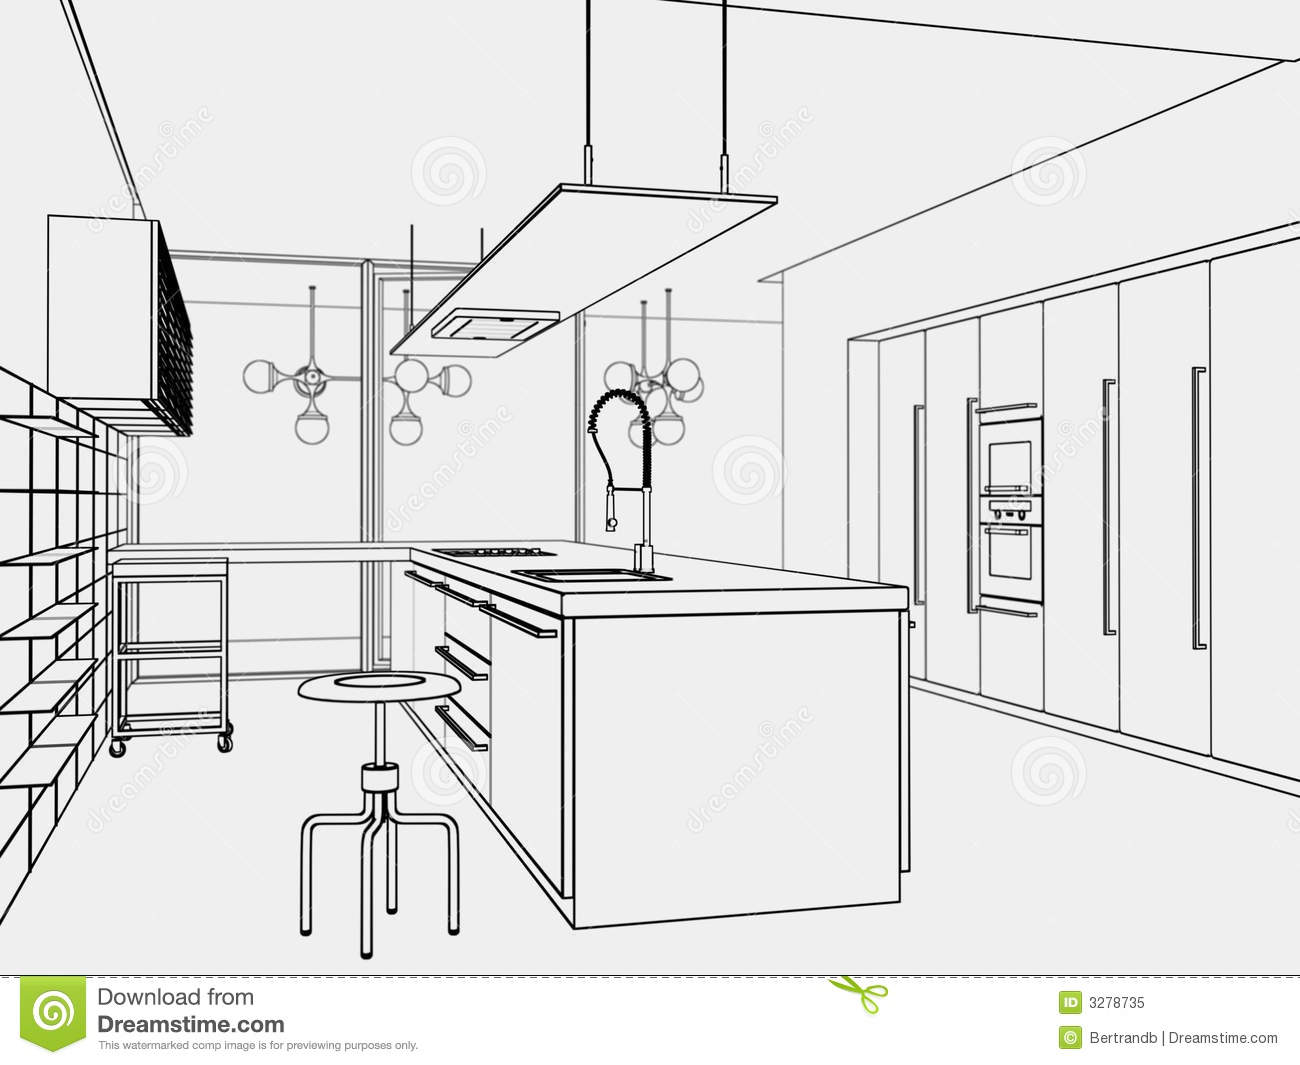 Kitchen Toon Style Stock Illustration Illustration Of Oven 3278735